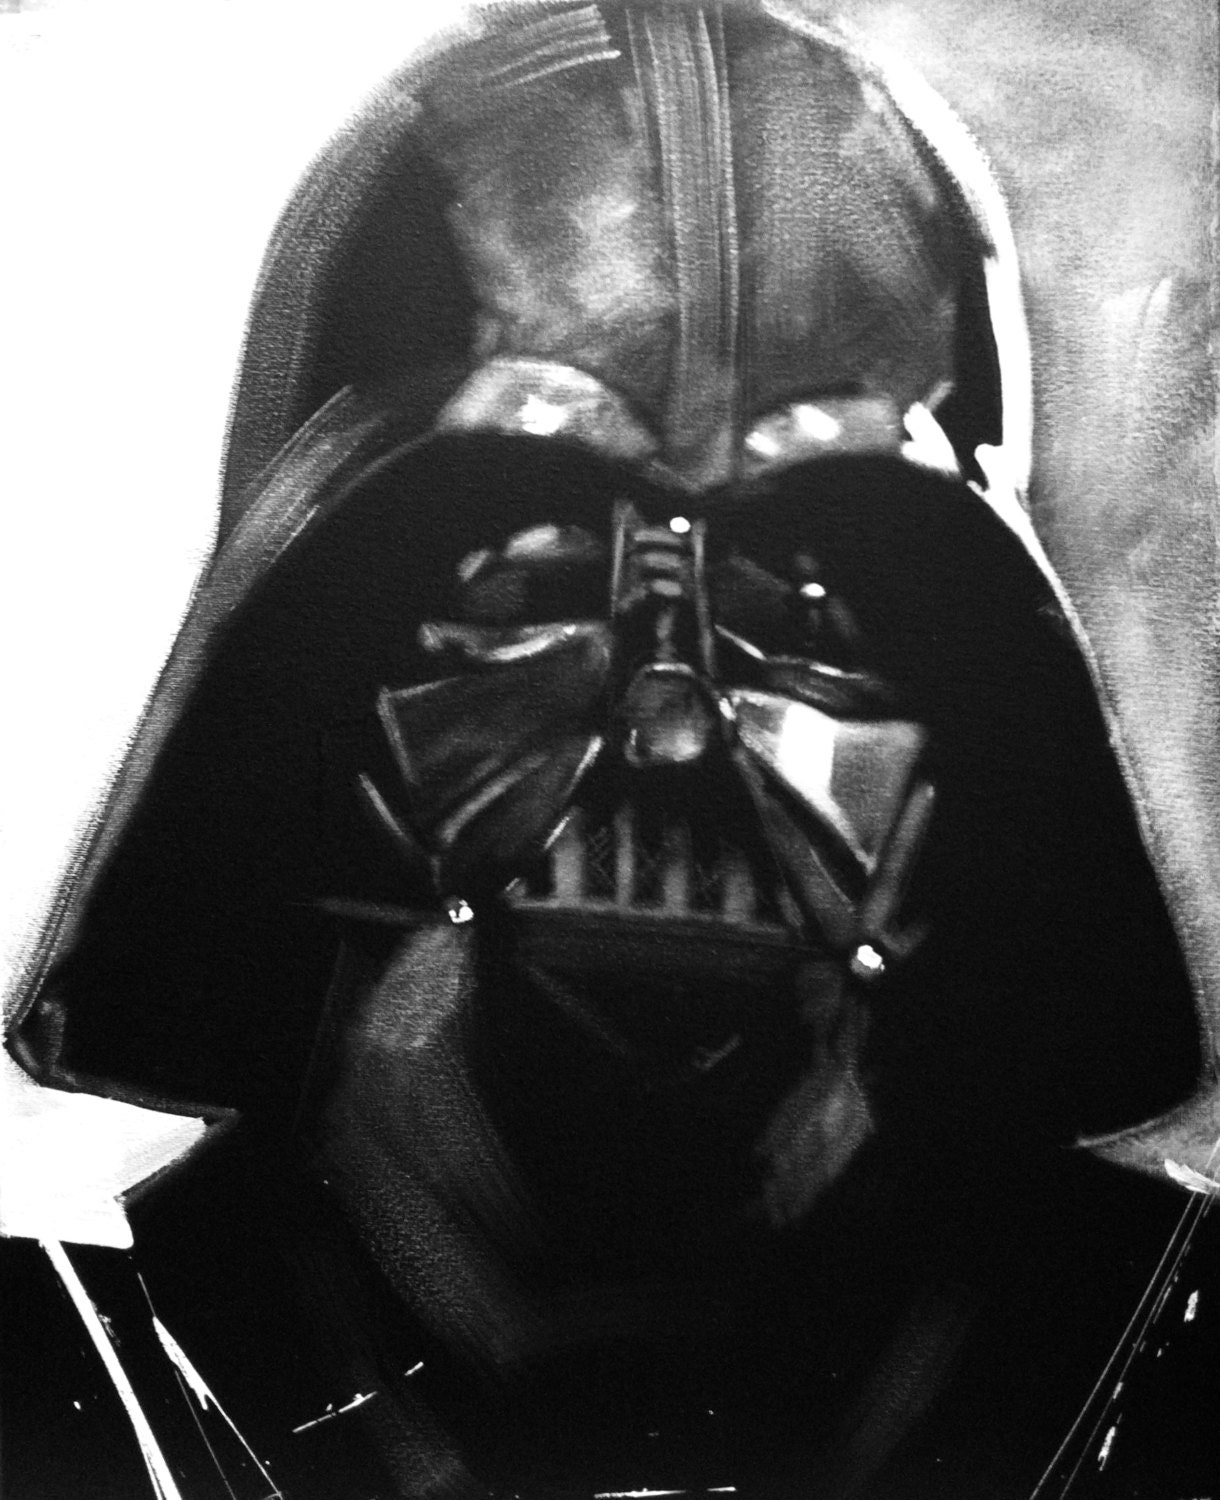 Darth vader black white portrait art original painting for Darth vader black and white